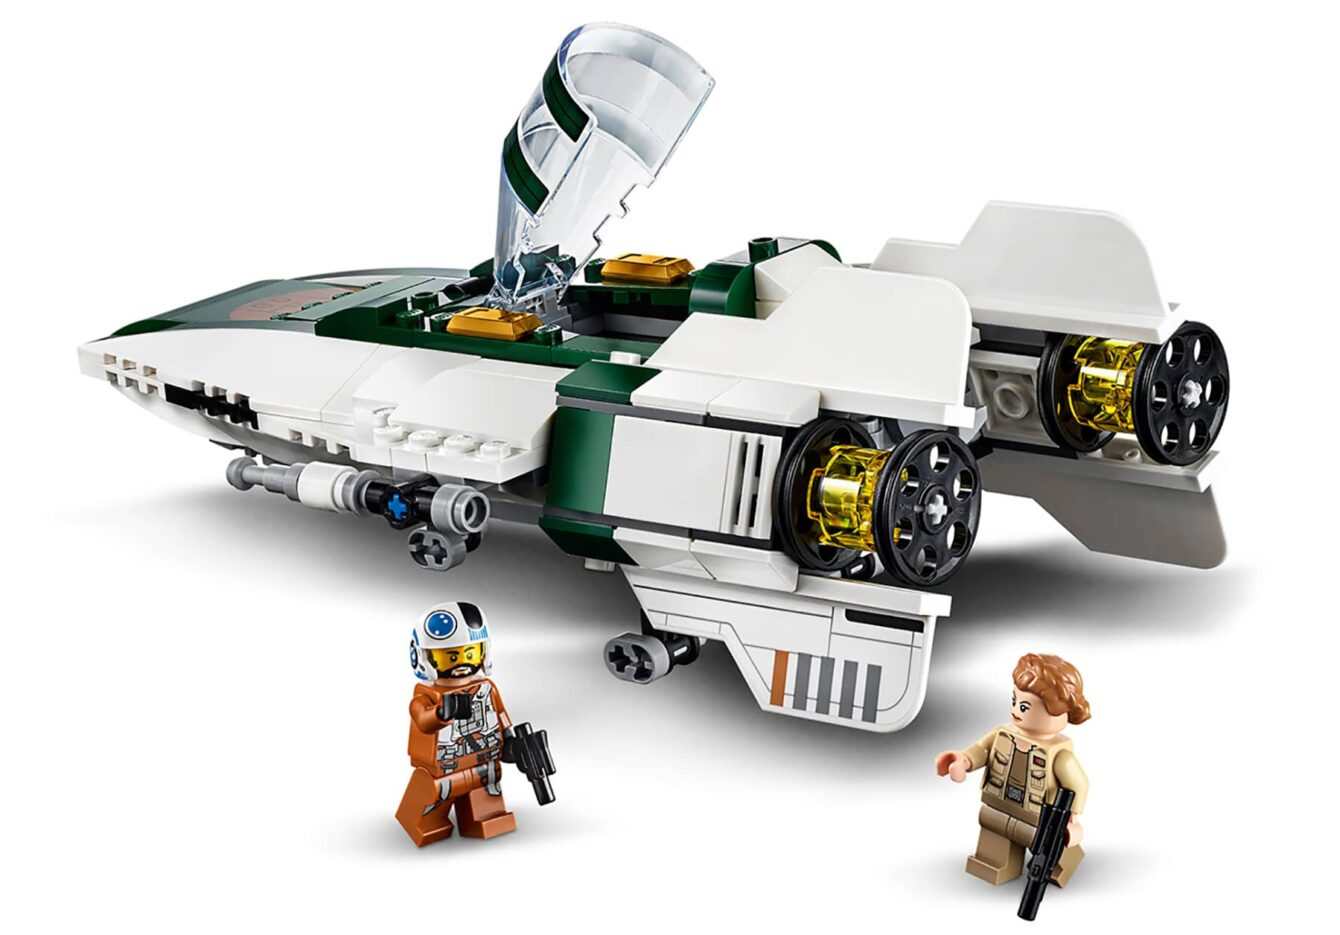 LEGO Star Wars 75248 Resistance A-Wing Starfighter 2